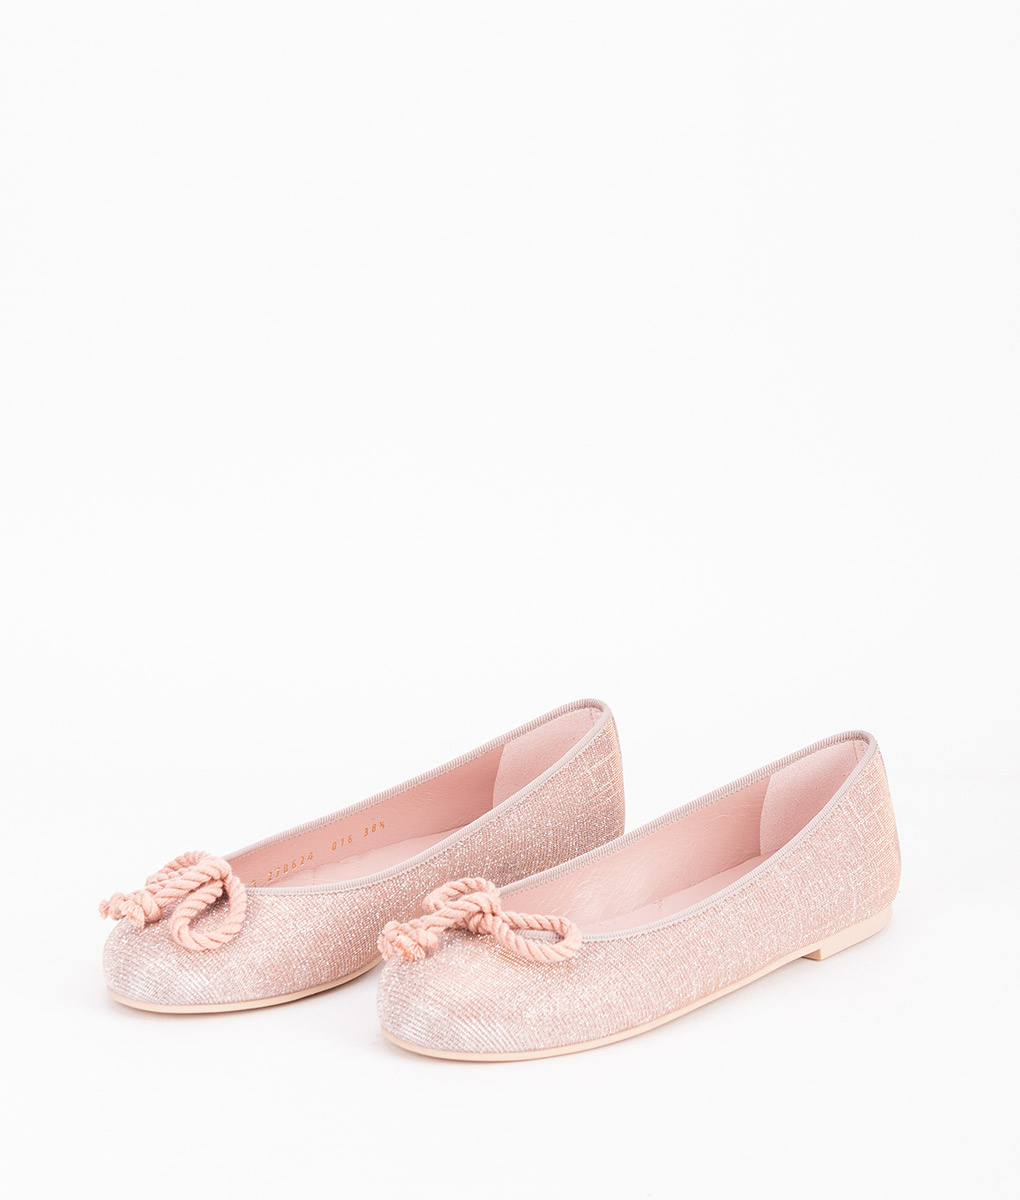 PRETTY BALLERINAS Women Ballerinas 47136 ROSARIO EXTRA S, Gallasia Tan 149.99